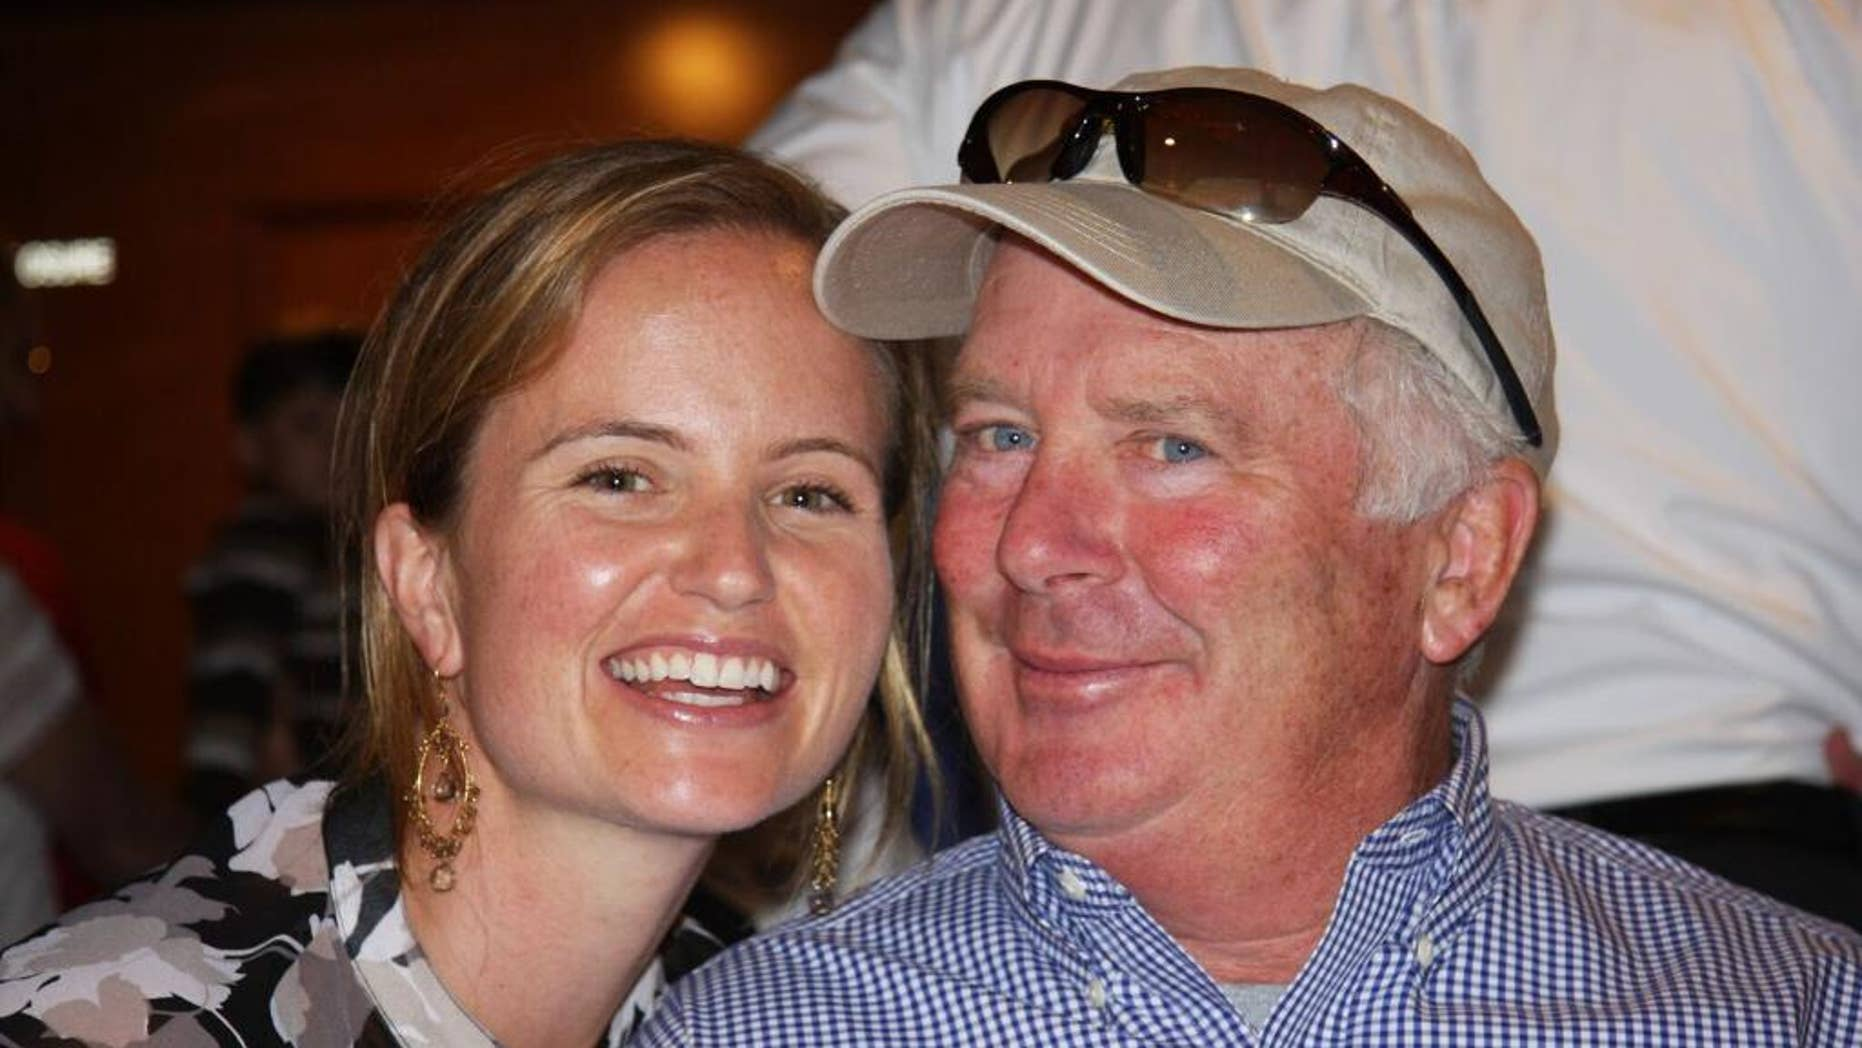 "This 2009 photo provided by Caitlin Connors shows Chris Connors and his second wife, Emily. Chris Connors, who had amyotrophic lateral sclerosis, or ALS, and pancreatic cancer, died Dec. 9, 2016 at age 67, at his home surrounded by his family, in Concord, N.H. He had a wife and three children. ""The way he died is just like he lived: he wrote his own rules, he fought authority and he paved his own way,"" according to the obituary which has gone viral. (Caitlin Connors via AP)"